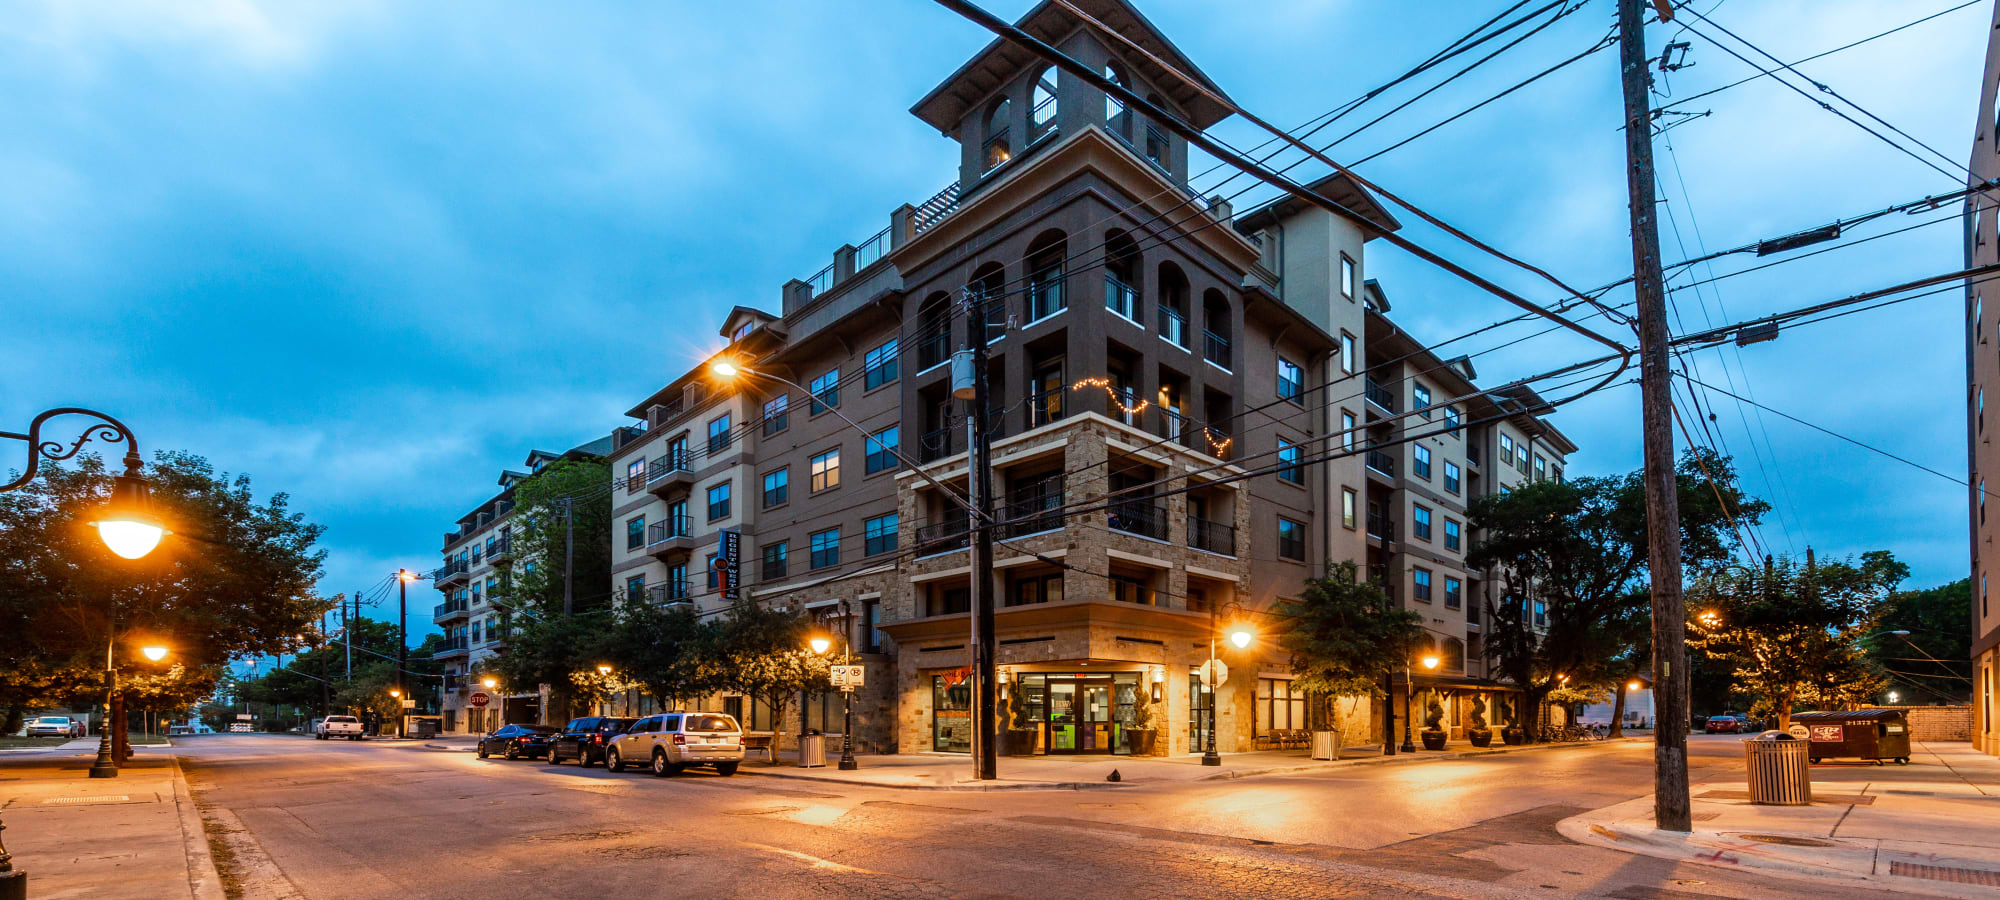 Apartments at Regents West at 26th in Austin, Texas